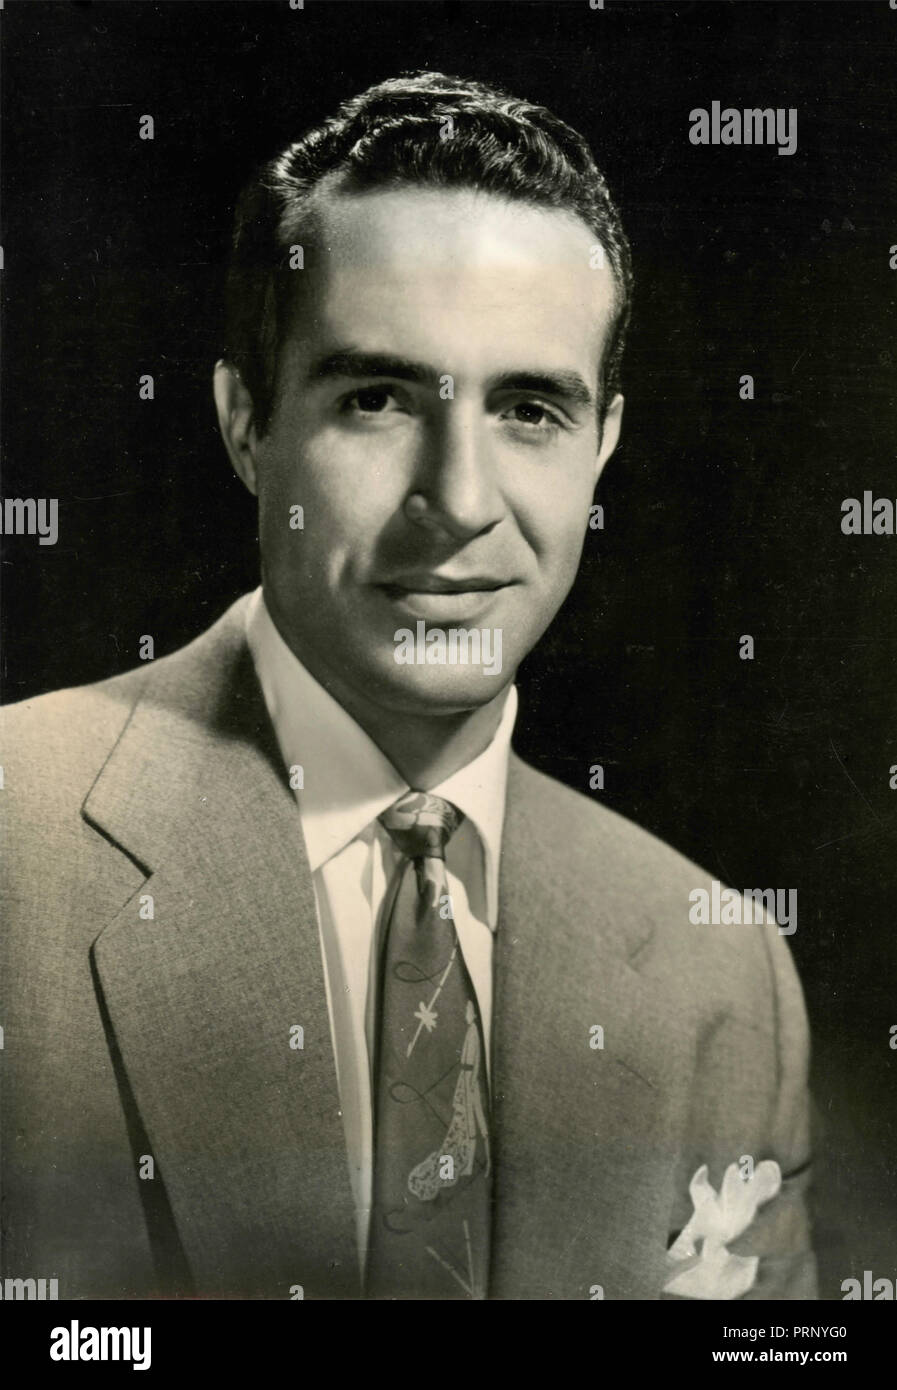 Mexican actor Ricardo Montalban, 1953 - Stock Image